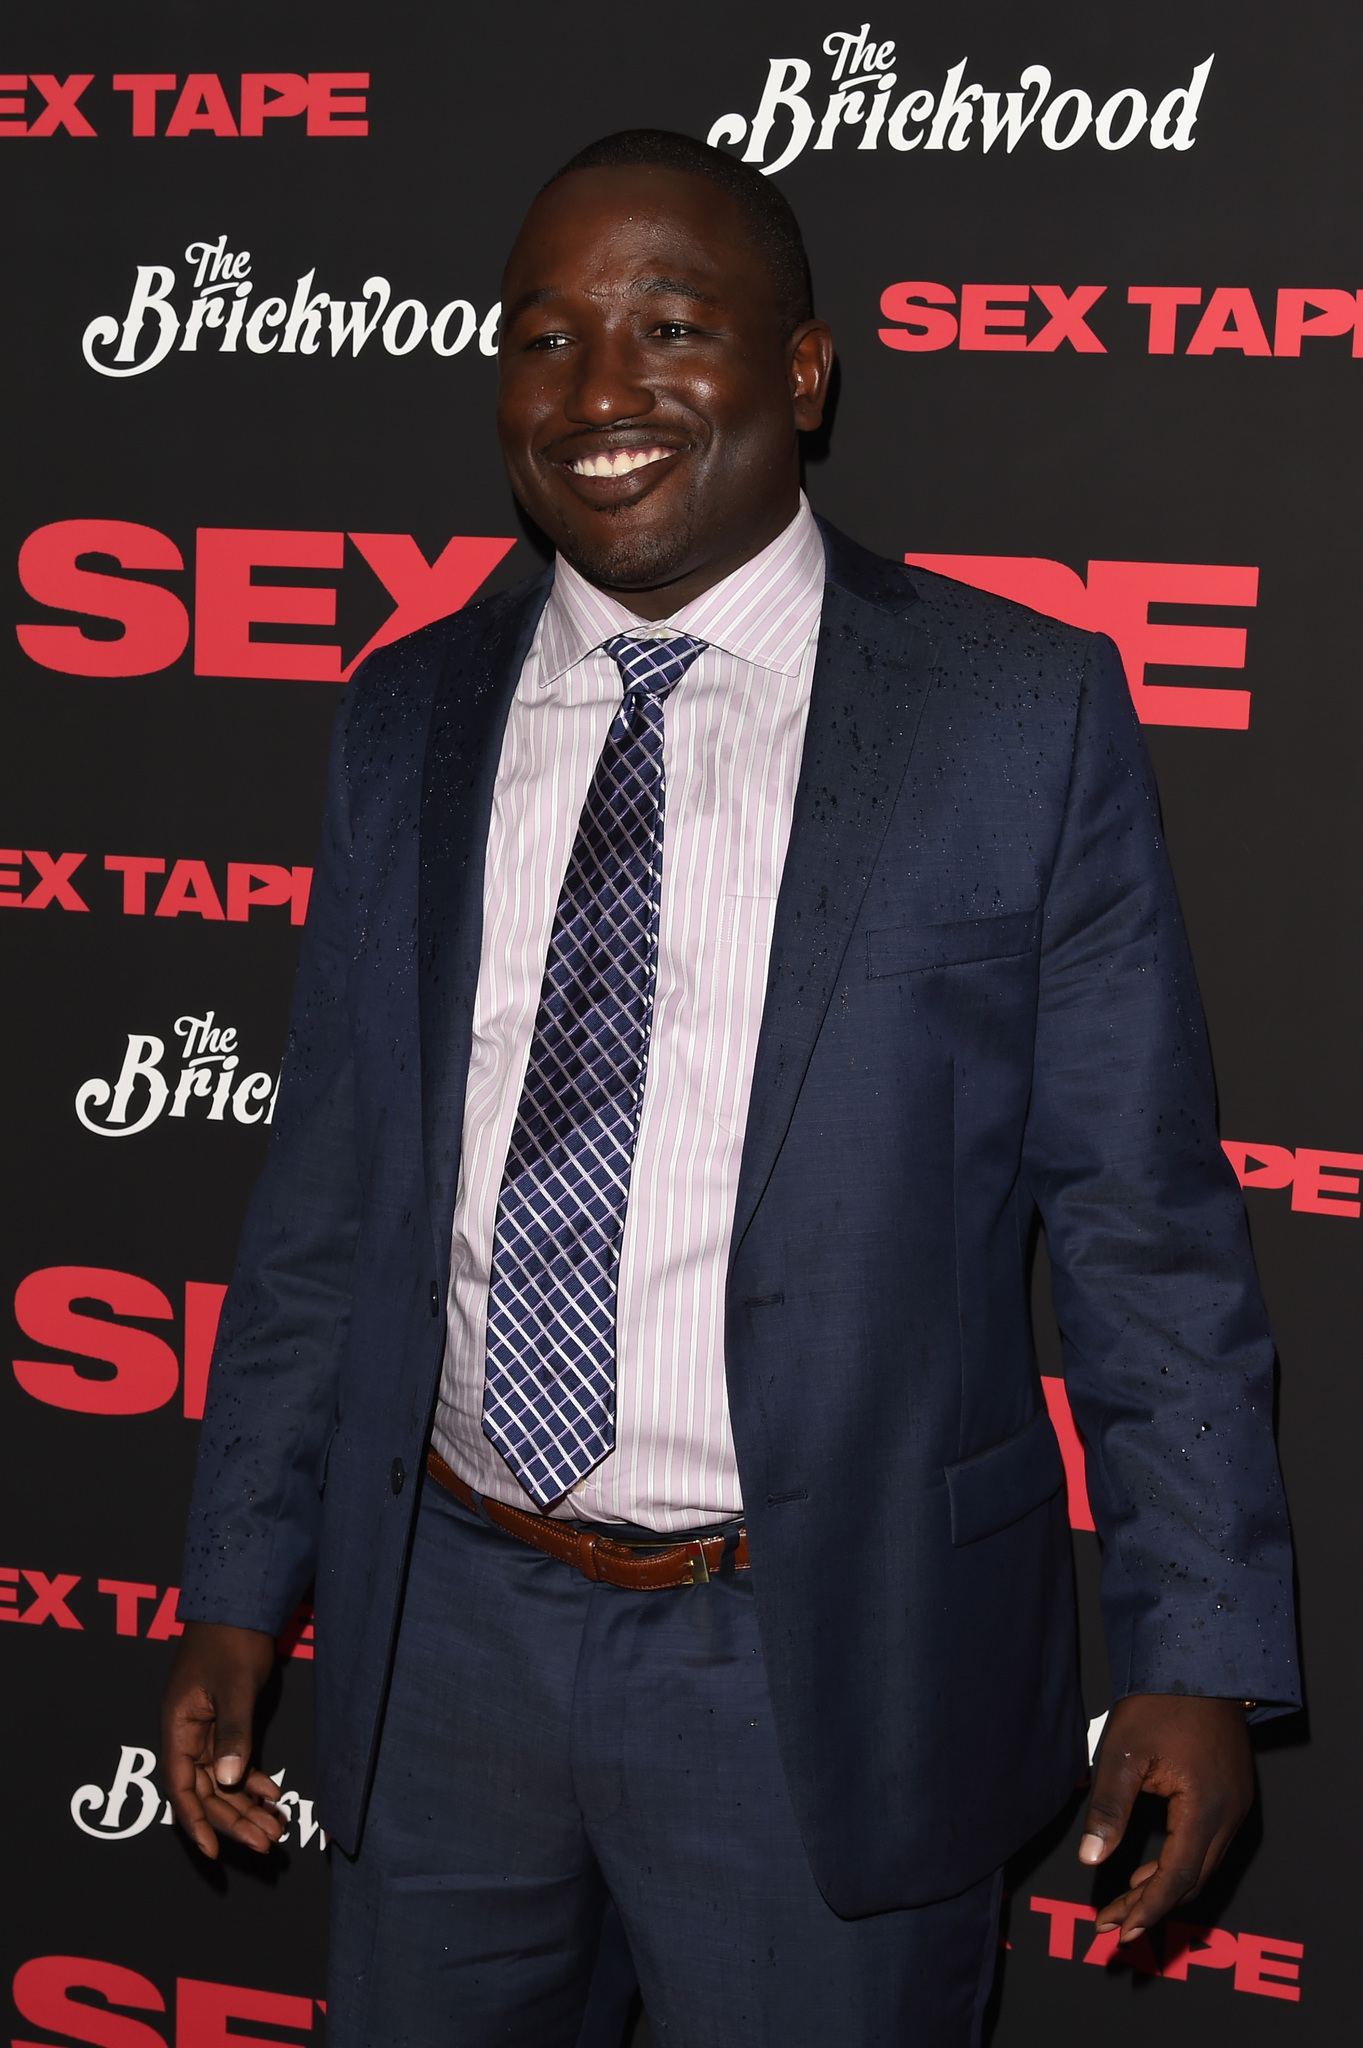 Hannibal Buress at an event for Sex Tape (2014)